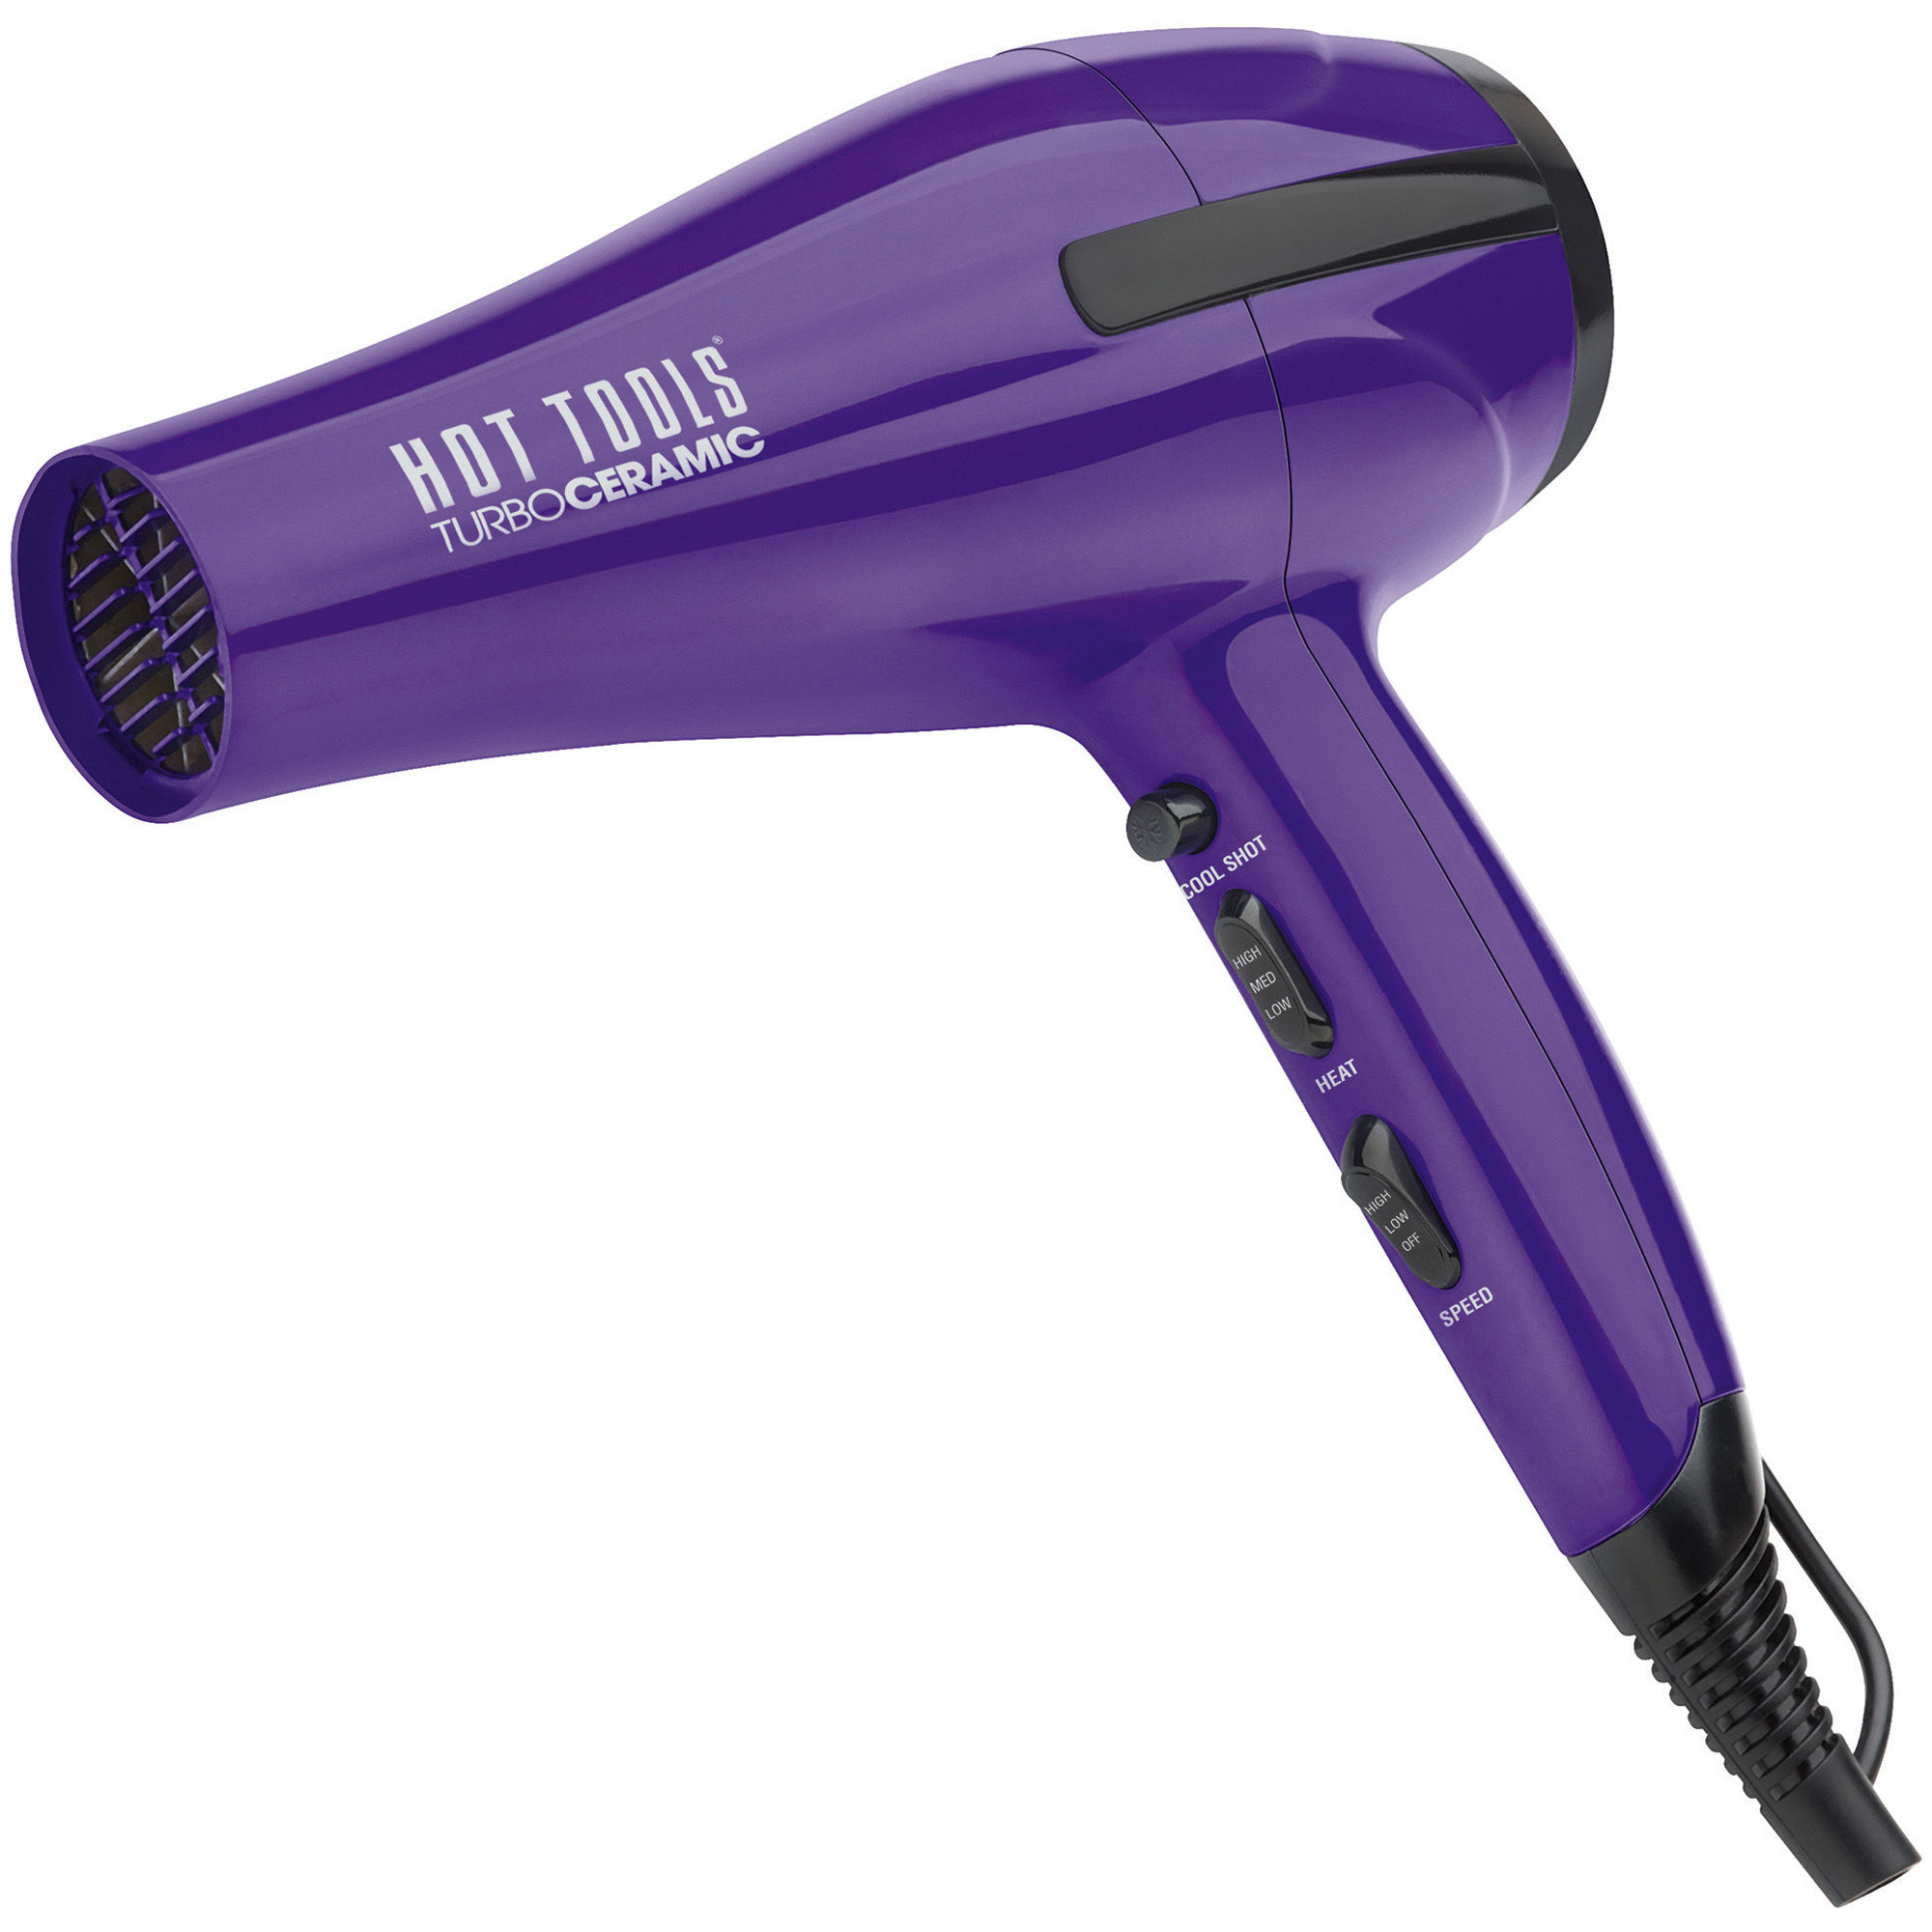 Hot Tools Tourmaline Blow Hair Dryer